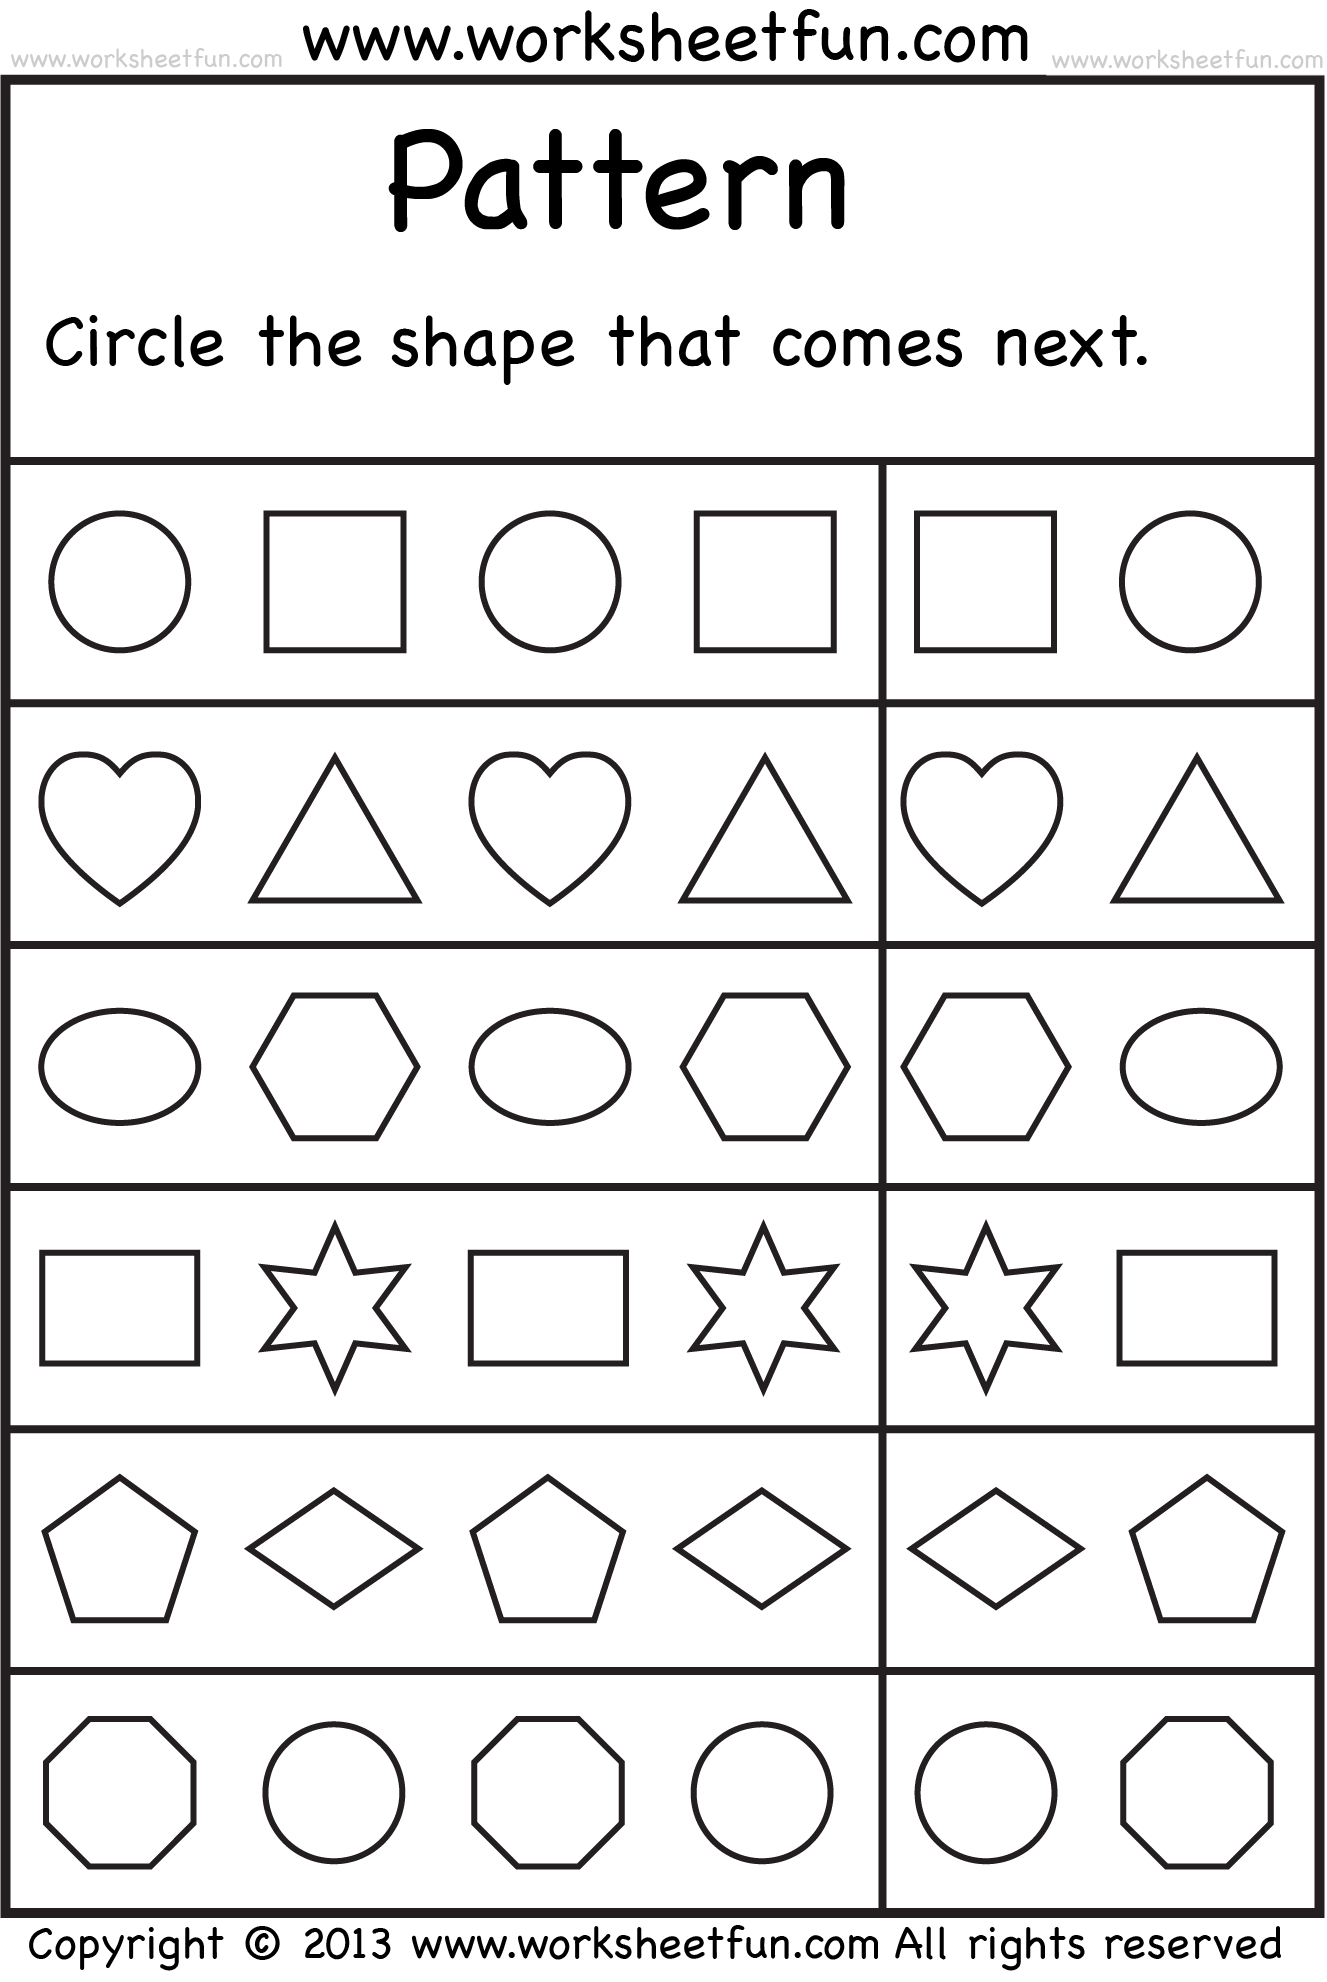 Proatmealus  Remarkable  Images About School Worksheets On Pinterest  Number Words  With Lovely  Images About School Worksheets On Pinterest  Number Words Alphabet Worksheets And Free Printable Kindergarten Worksheets With Comely Spanish Present Perfect Worksheet Also Fact Family Worksheets Multiplication In Addition Color Addition Worksheets And Third Grade Multiplication Worksheet As Well As Types Of Context Clues Worksheets Additionally Halloween Algebra Worksheets From Pinterestcom With Proatmealus  Lovely  Images About School Worksheets On Pinterest  Number Words  With Comely  Images About School Worksheets On Pinterest  Number Words Alphabet Worksheets And Free Printable Kindergarten Worksheets And Remarkable Spanish Present Perfect Worksheet Also Fact Family Worksheets Multiplication In Addition Color Addition Worksheets From Pinterestcom